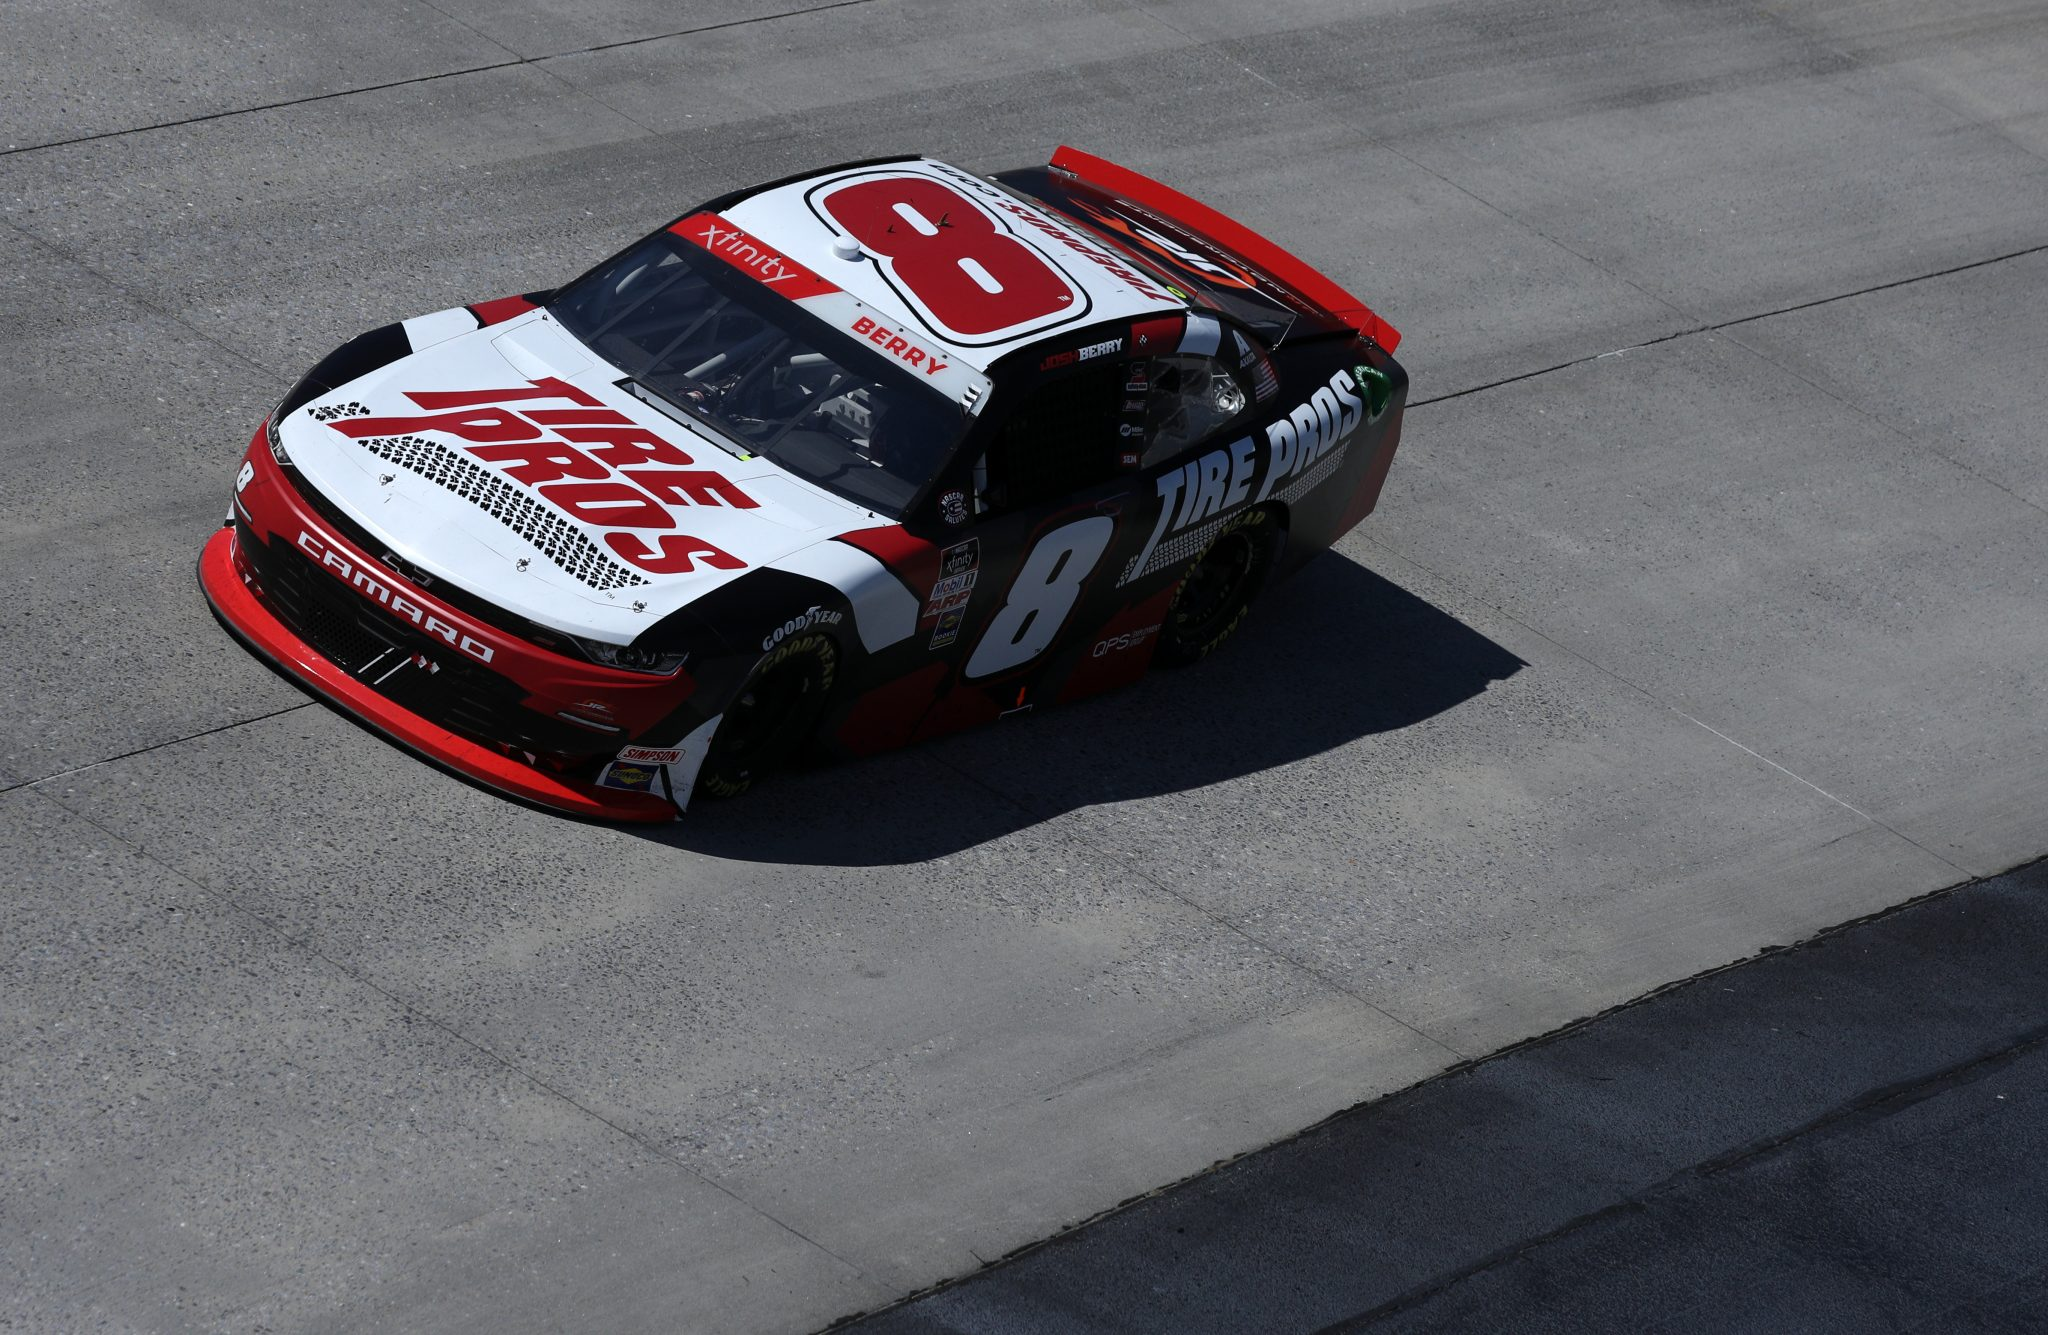 DOVER, DELAWARE - MAY 15: Josh Berry, driver of the #8 Tire Pros Chevrolet, races during the NASCAR Xfinity Series Drydene 200 race at Dover International Speedway on May 15, 2021 in Dover, Delaware. (Photo by Sean Gardner/Getty Images) | Getty Images